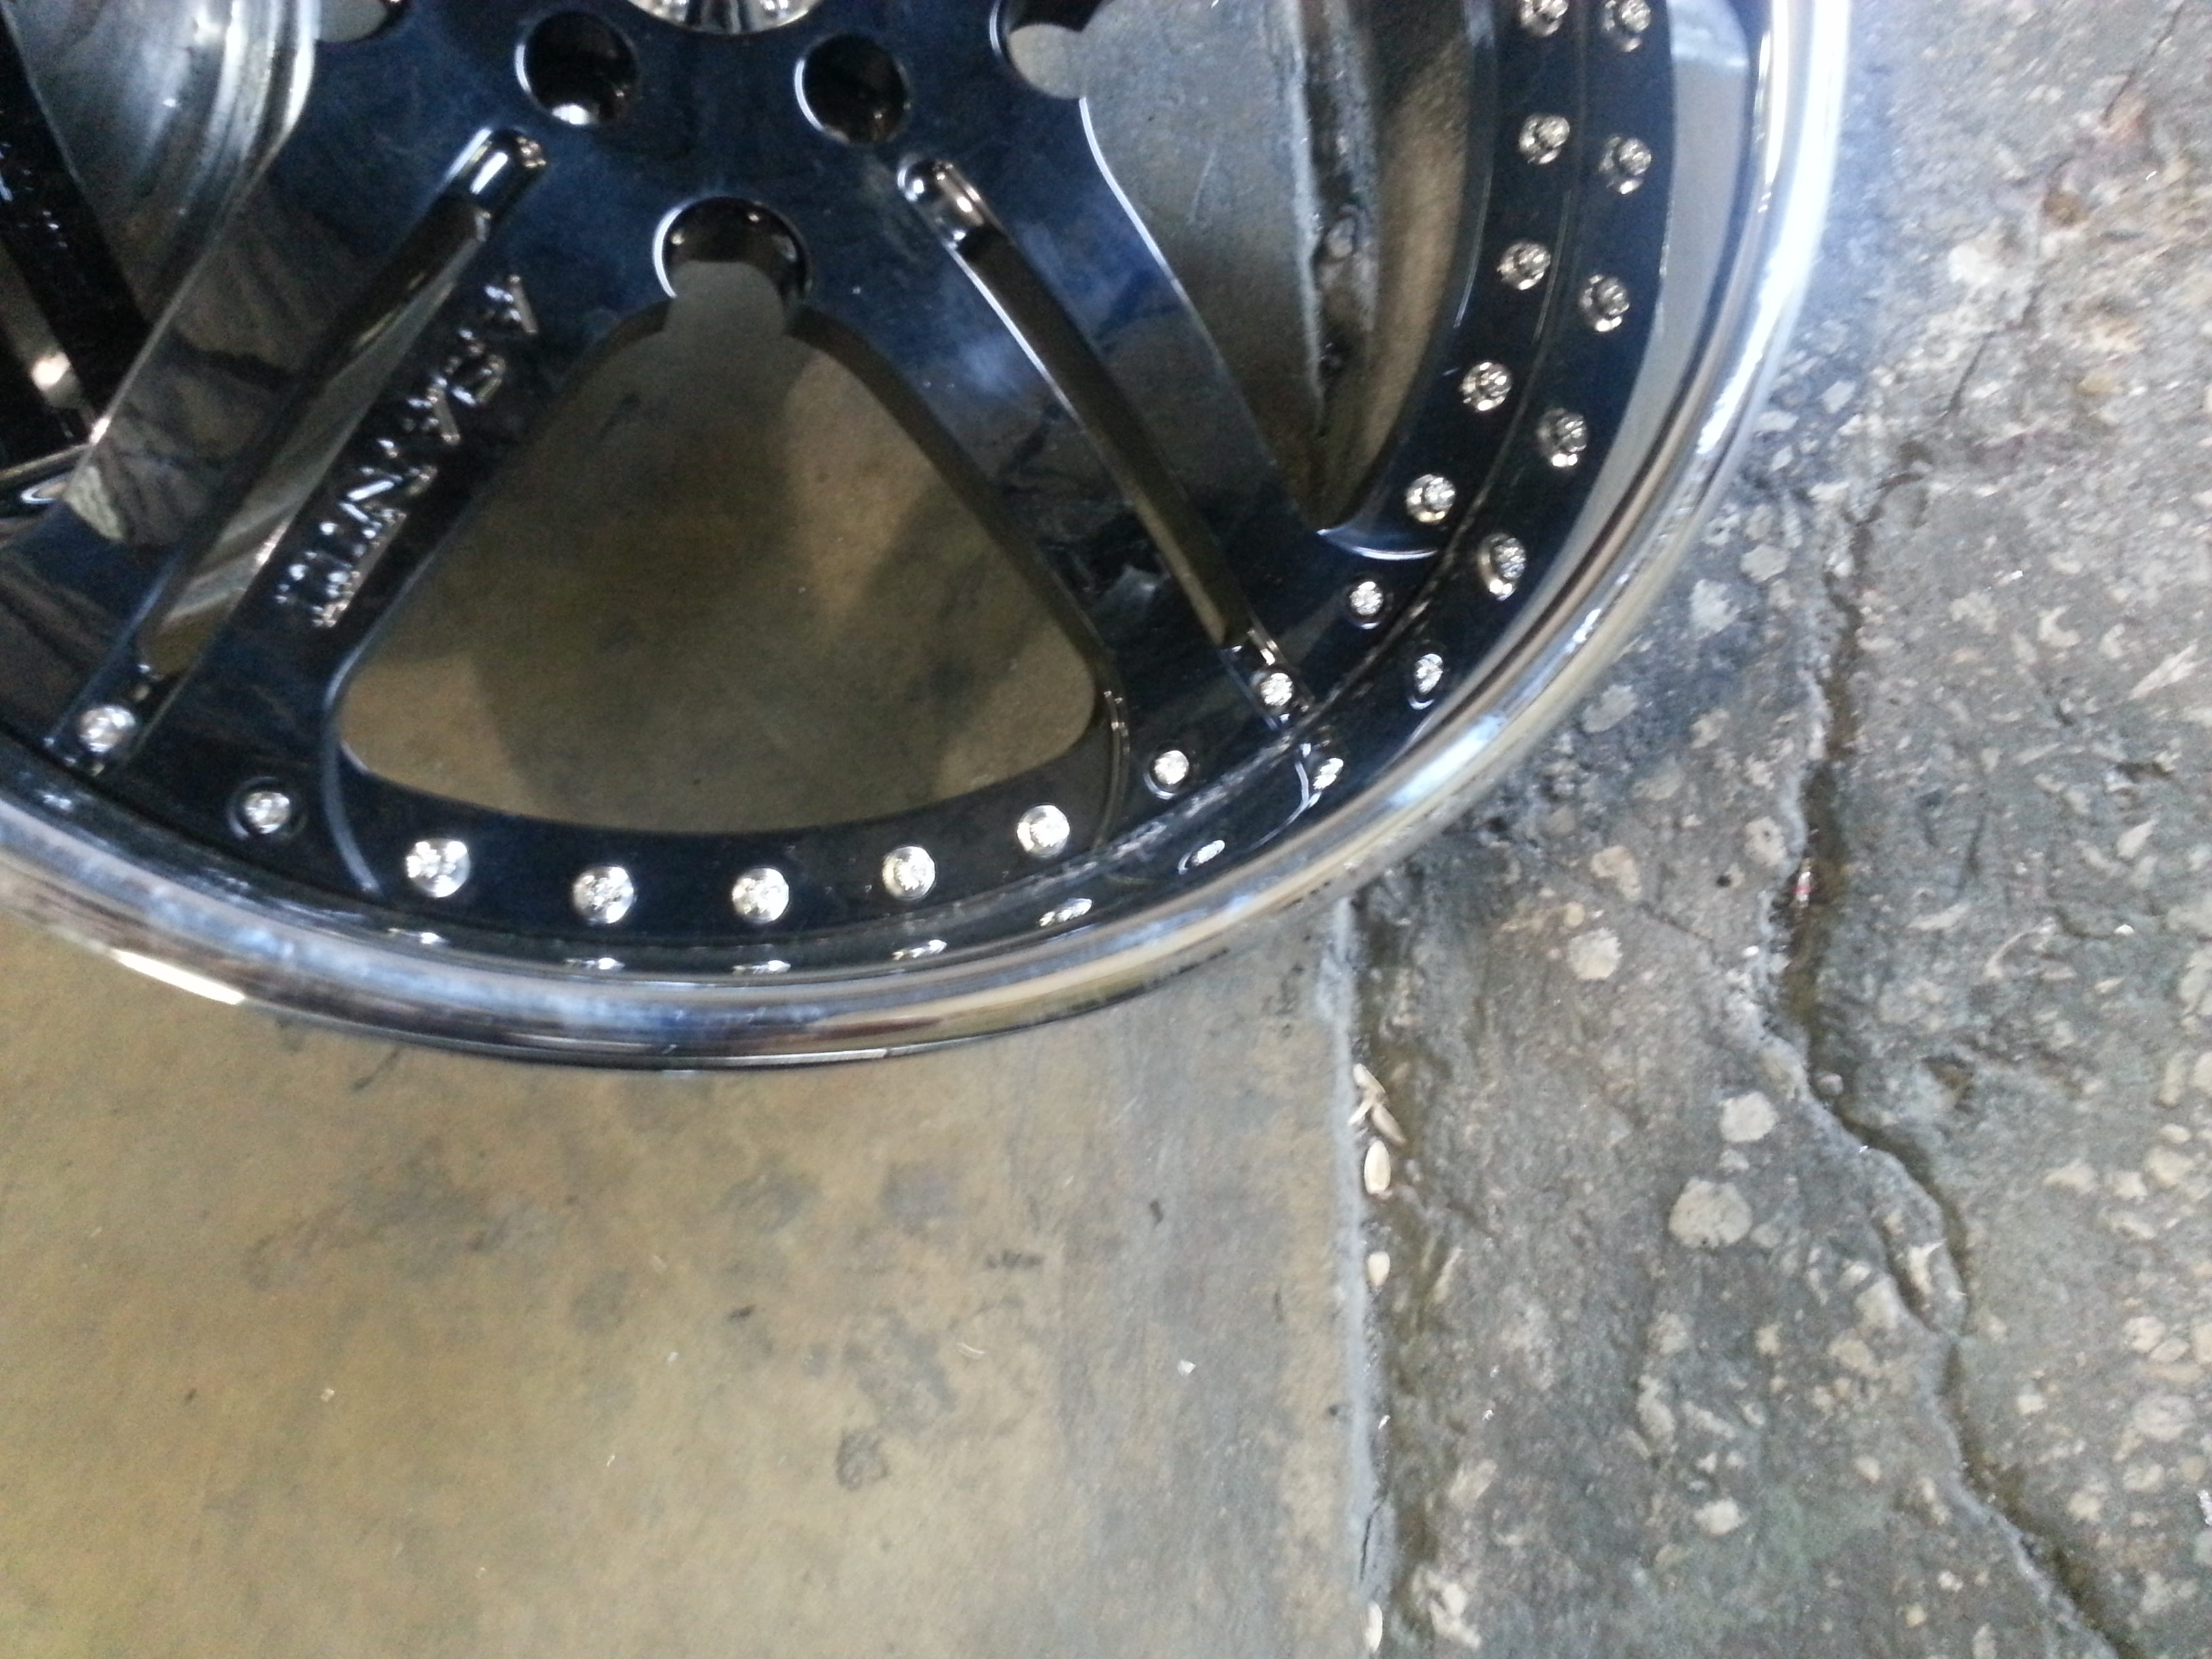 Damaged bent 22 inch asanti wheel pic 3 with chrome chipping and road rash